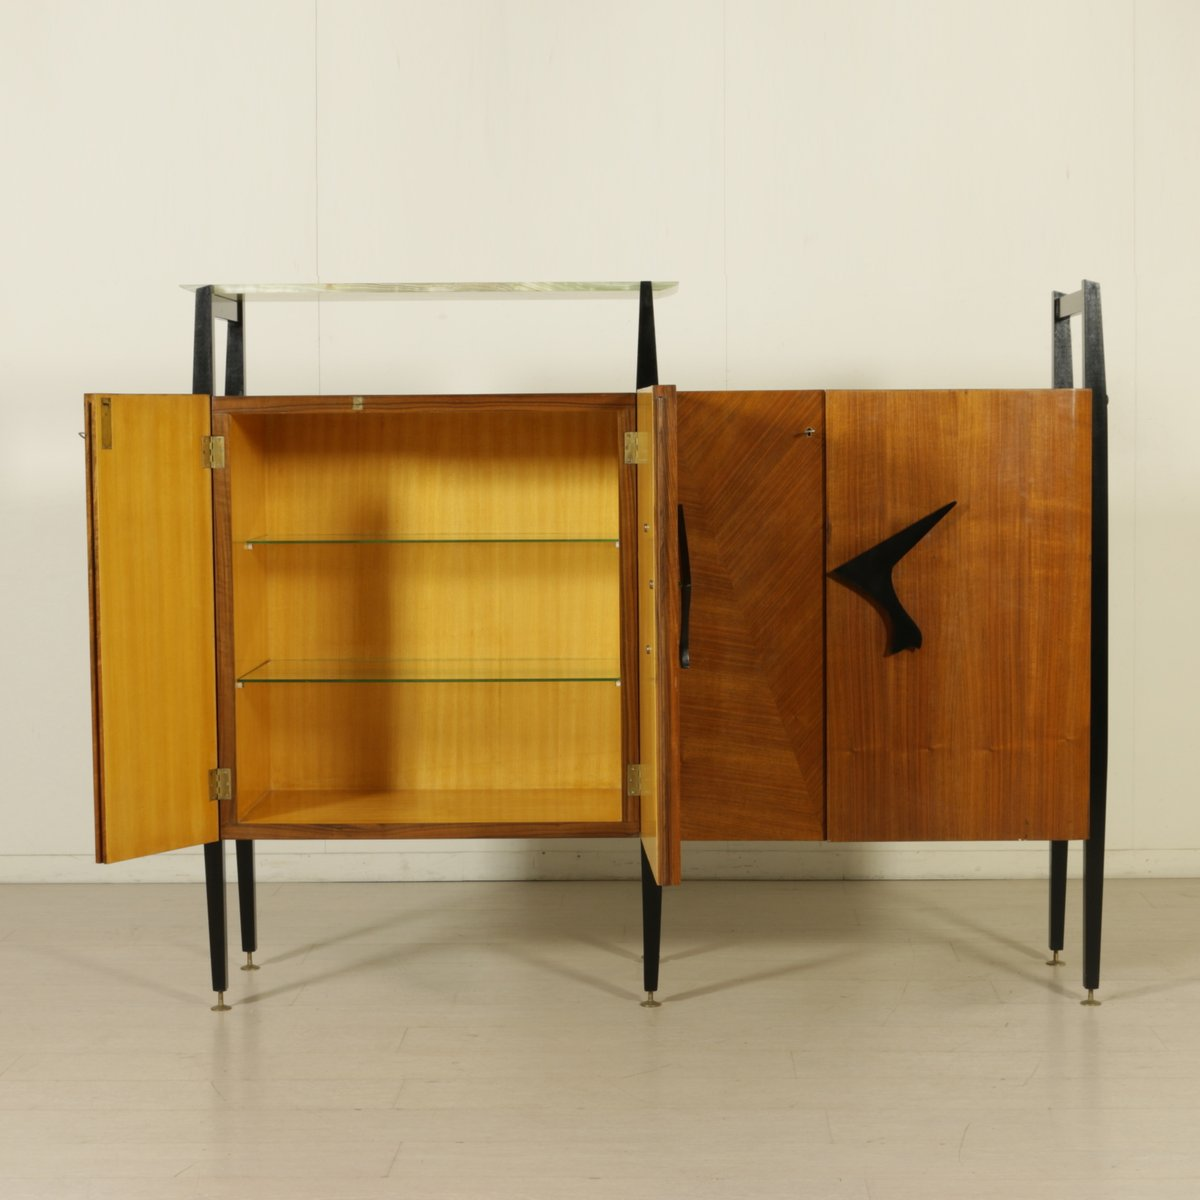 wohnzimmer schrank aus ahorn mahagoni furnier 1950er bei pamono kaufen. Black Bedroom Furniture Sets. Home Design Ideas